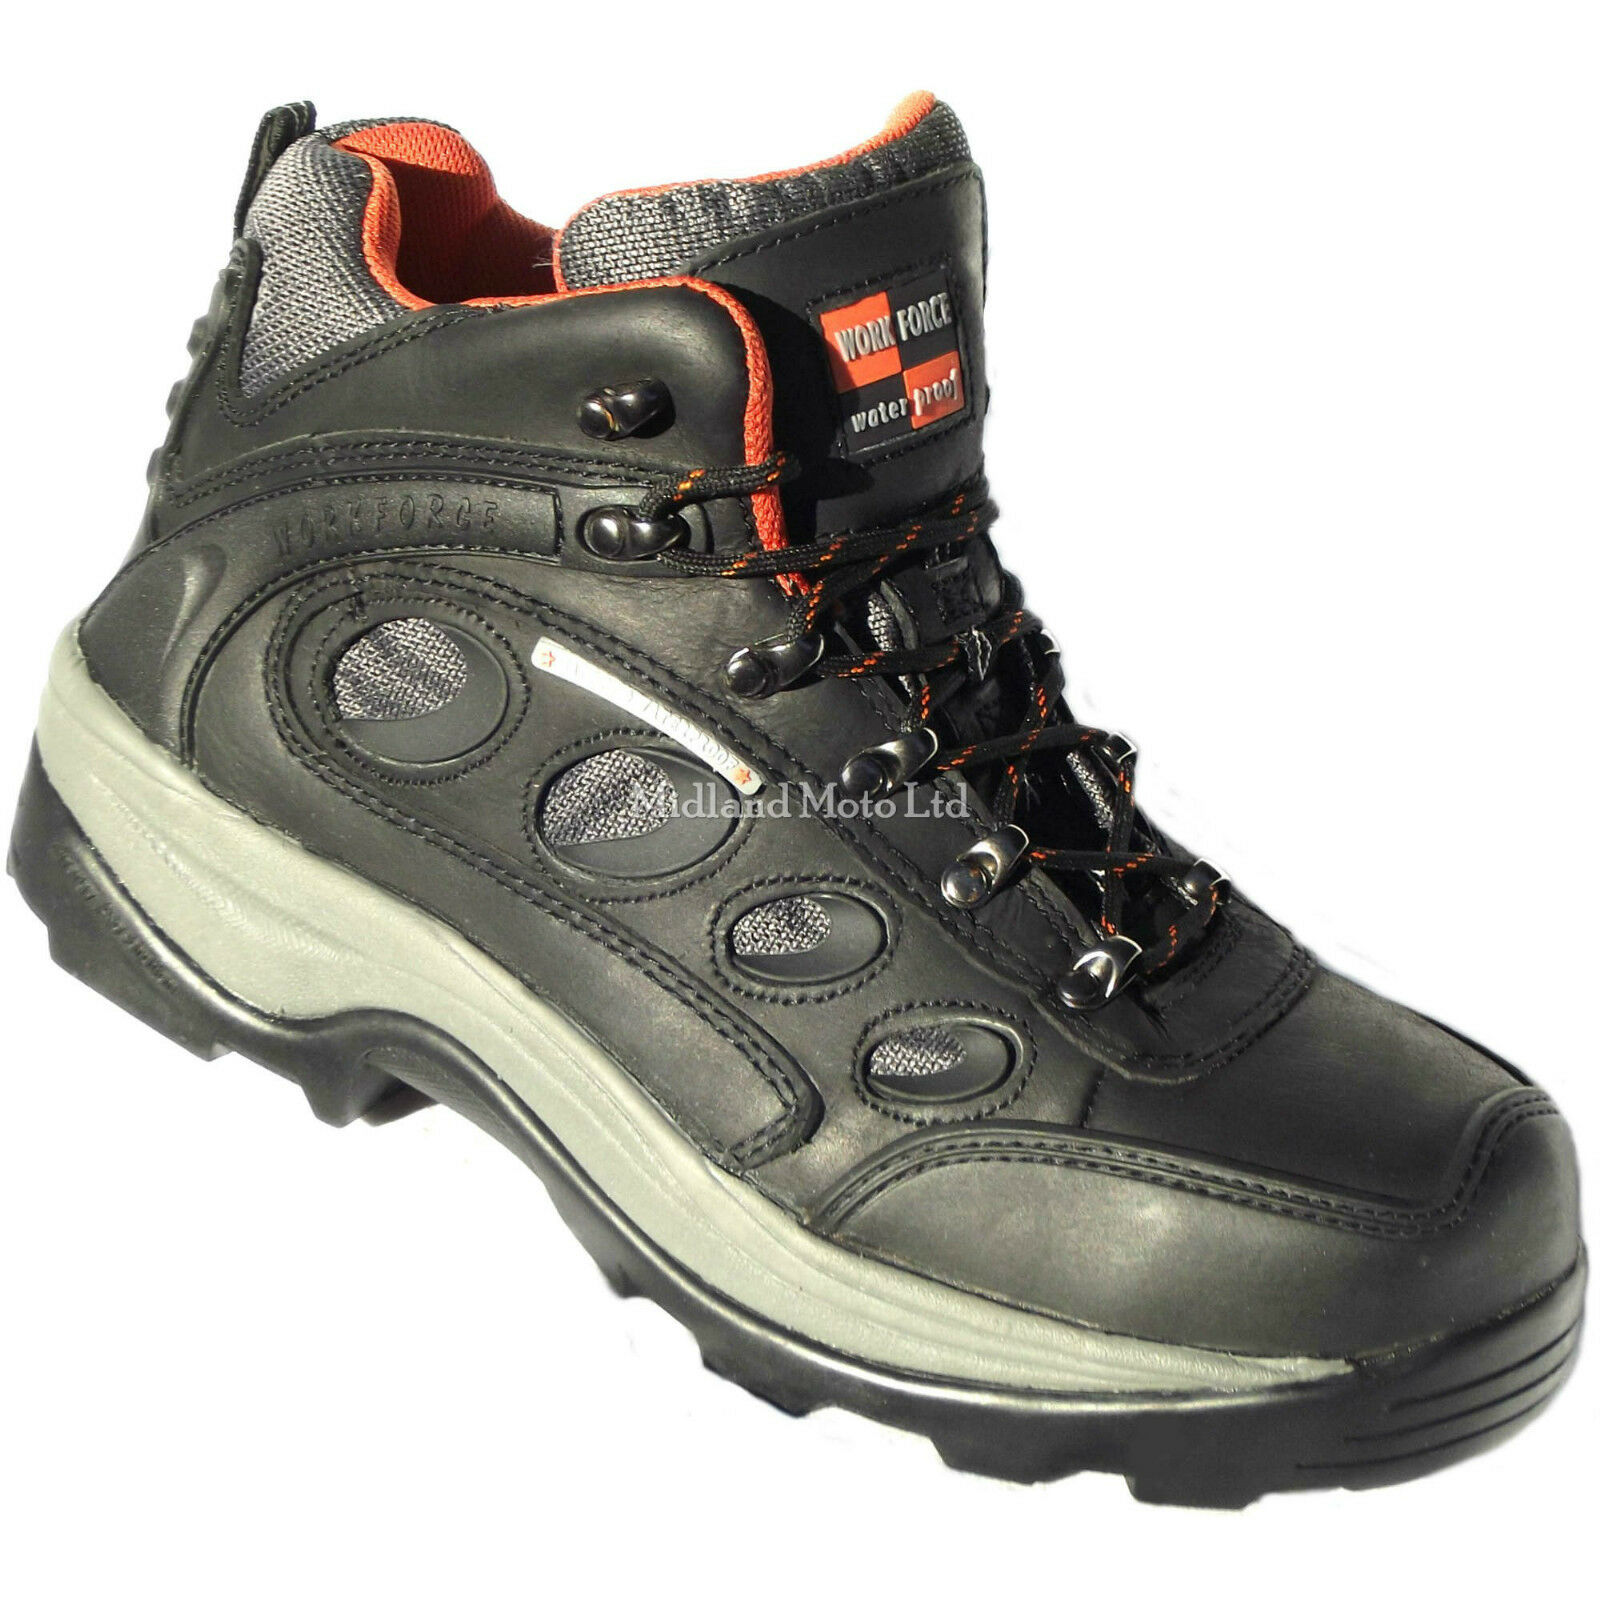 WORKFORCE, Safety Waterproof Steel Toe Cap Hiker Style Safety WORKFORCE, Stiefel / Trainers, Schuhes b4968c